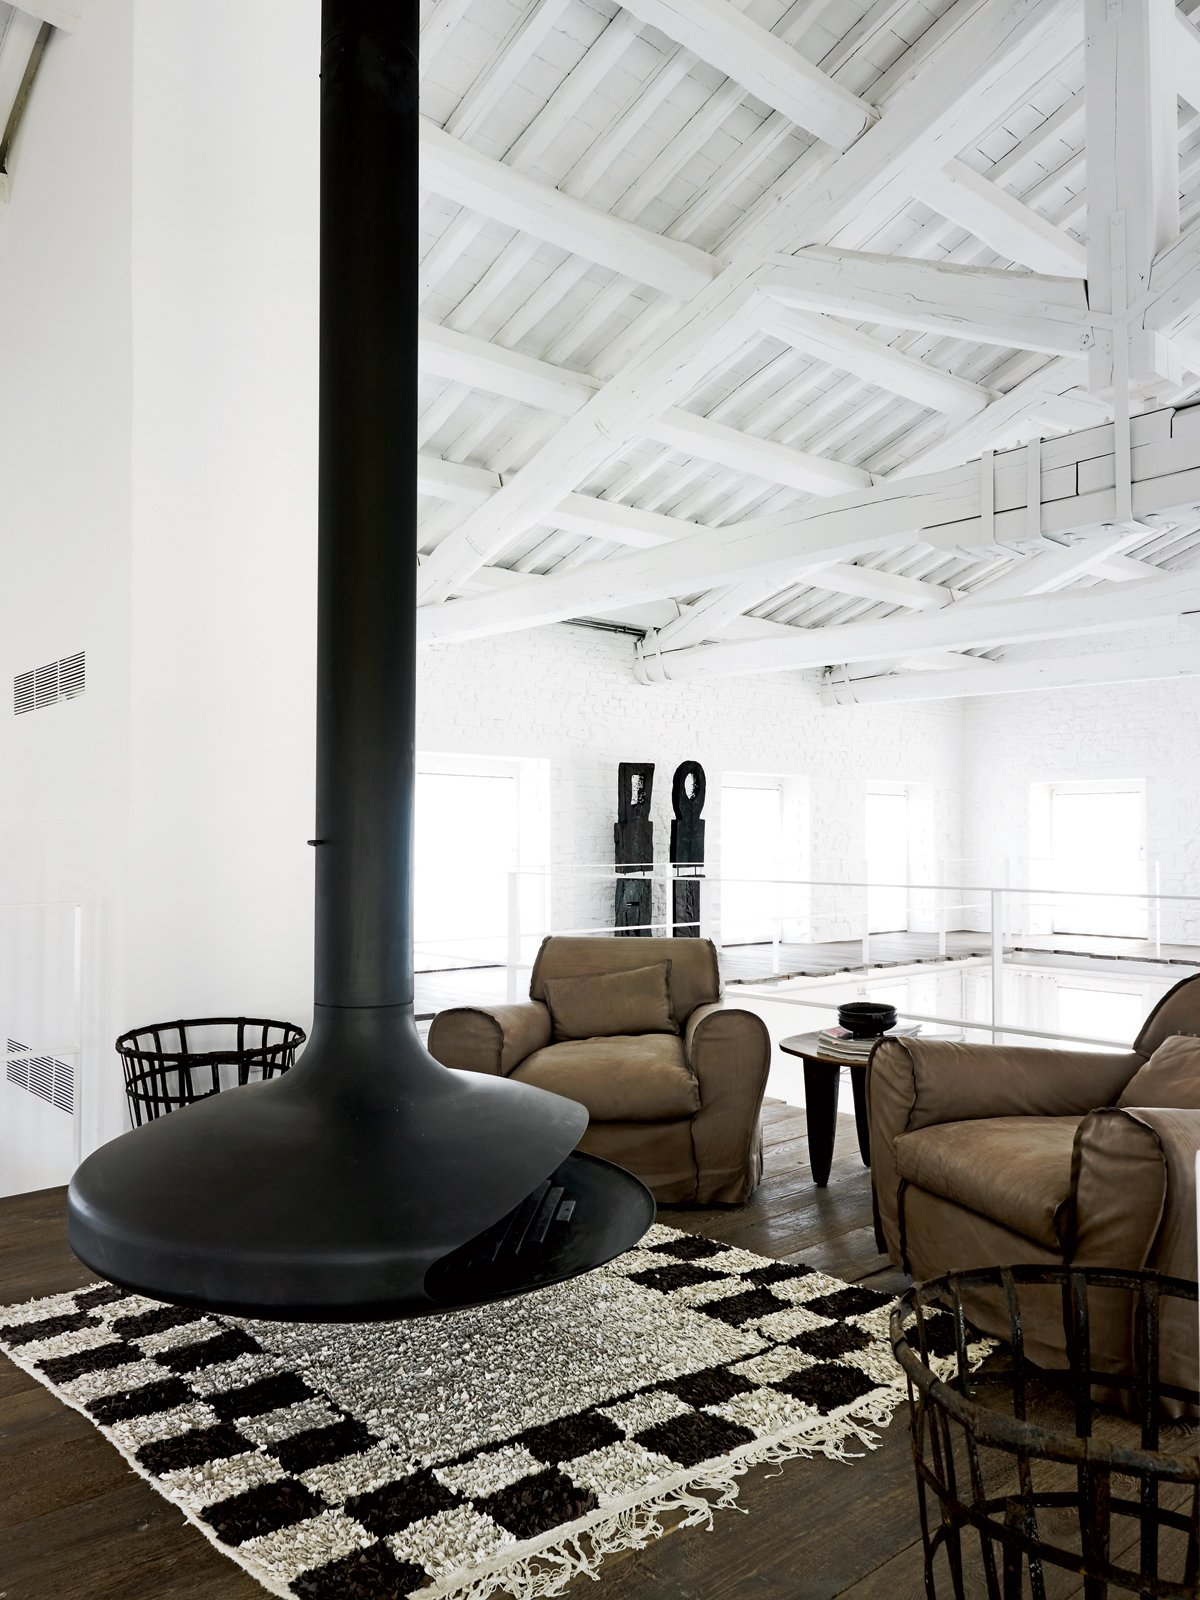 In the upper-level seating area, an Ergofocus fireplace is flanked by a pair of leather armchairs designed by Navone for Baxter Paola Navone's Industrial Style Renovation in Italy - Photo 8 of 11